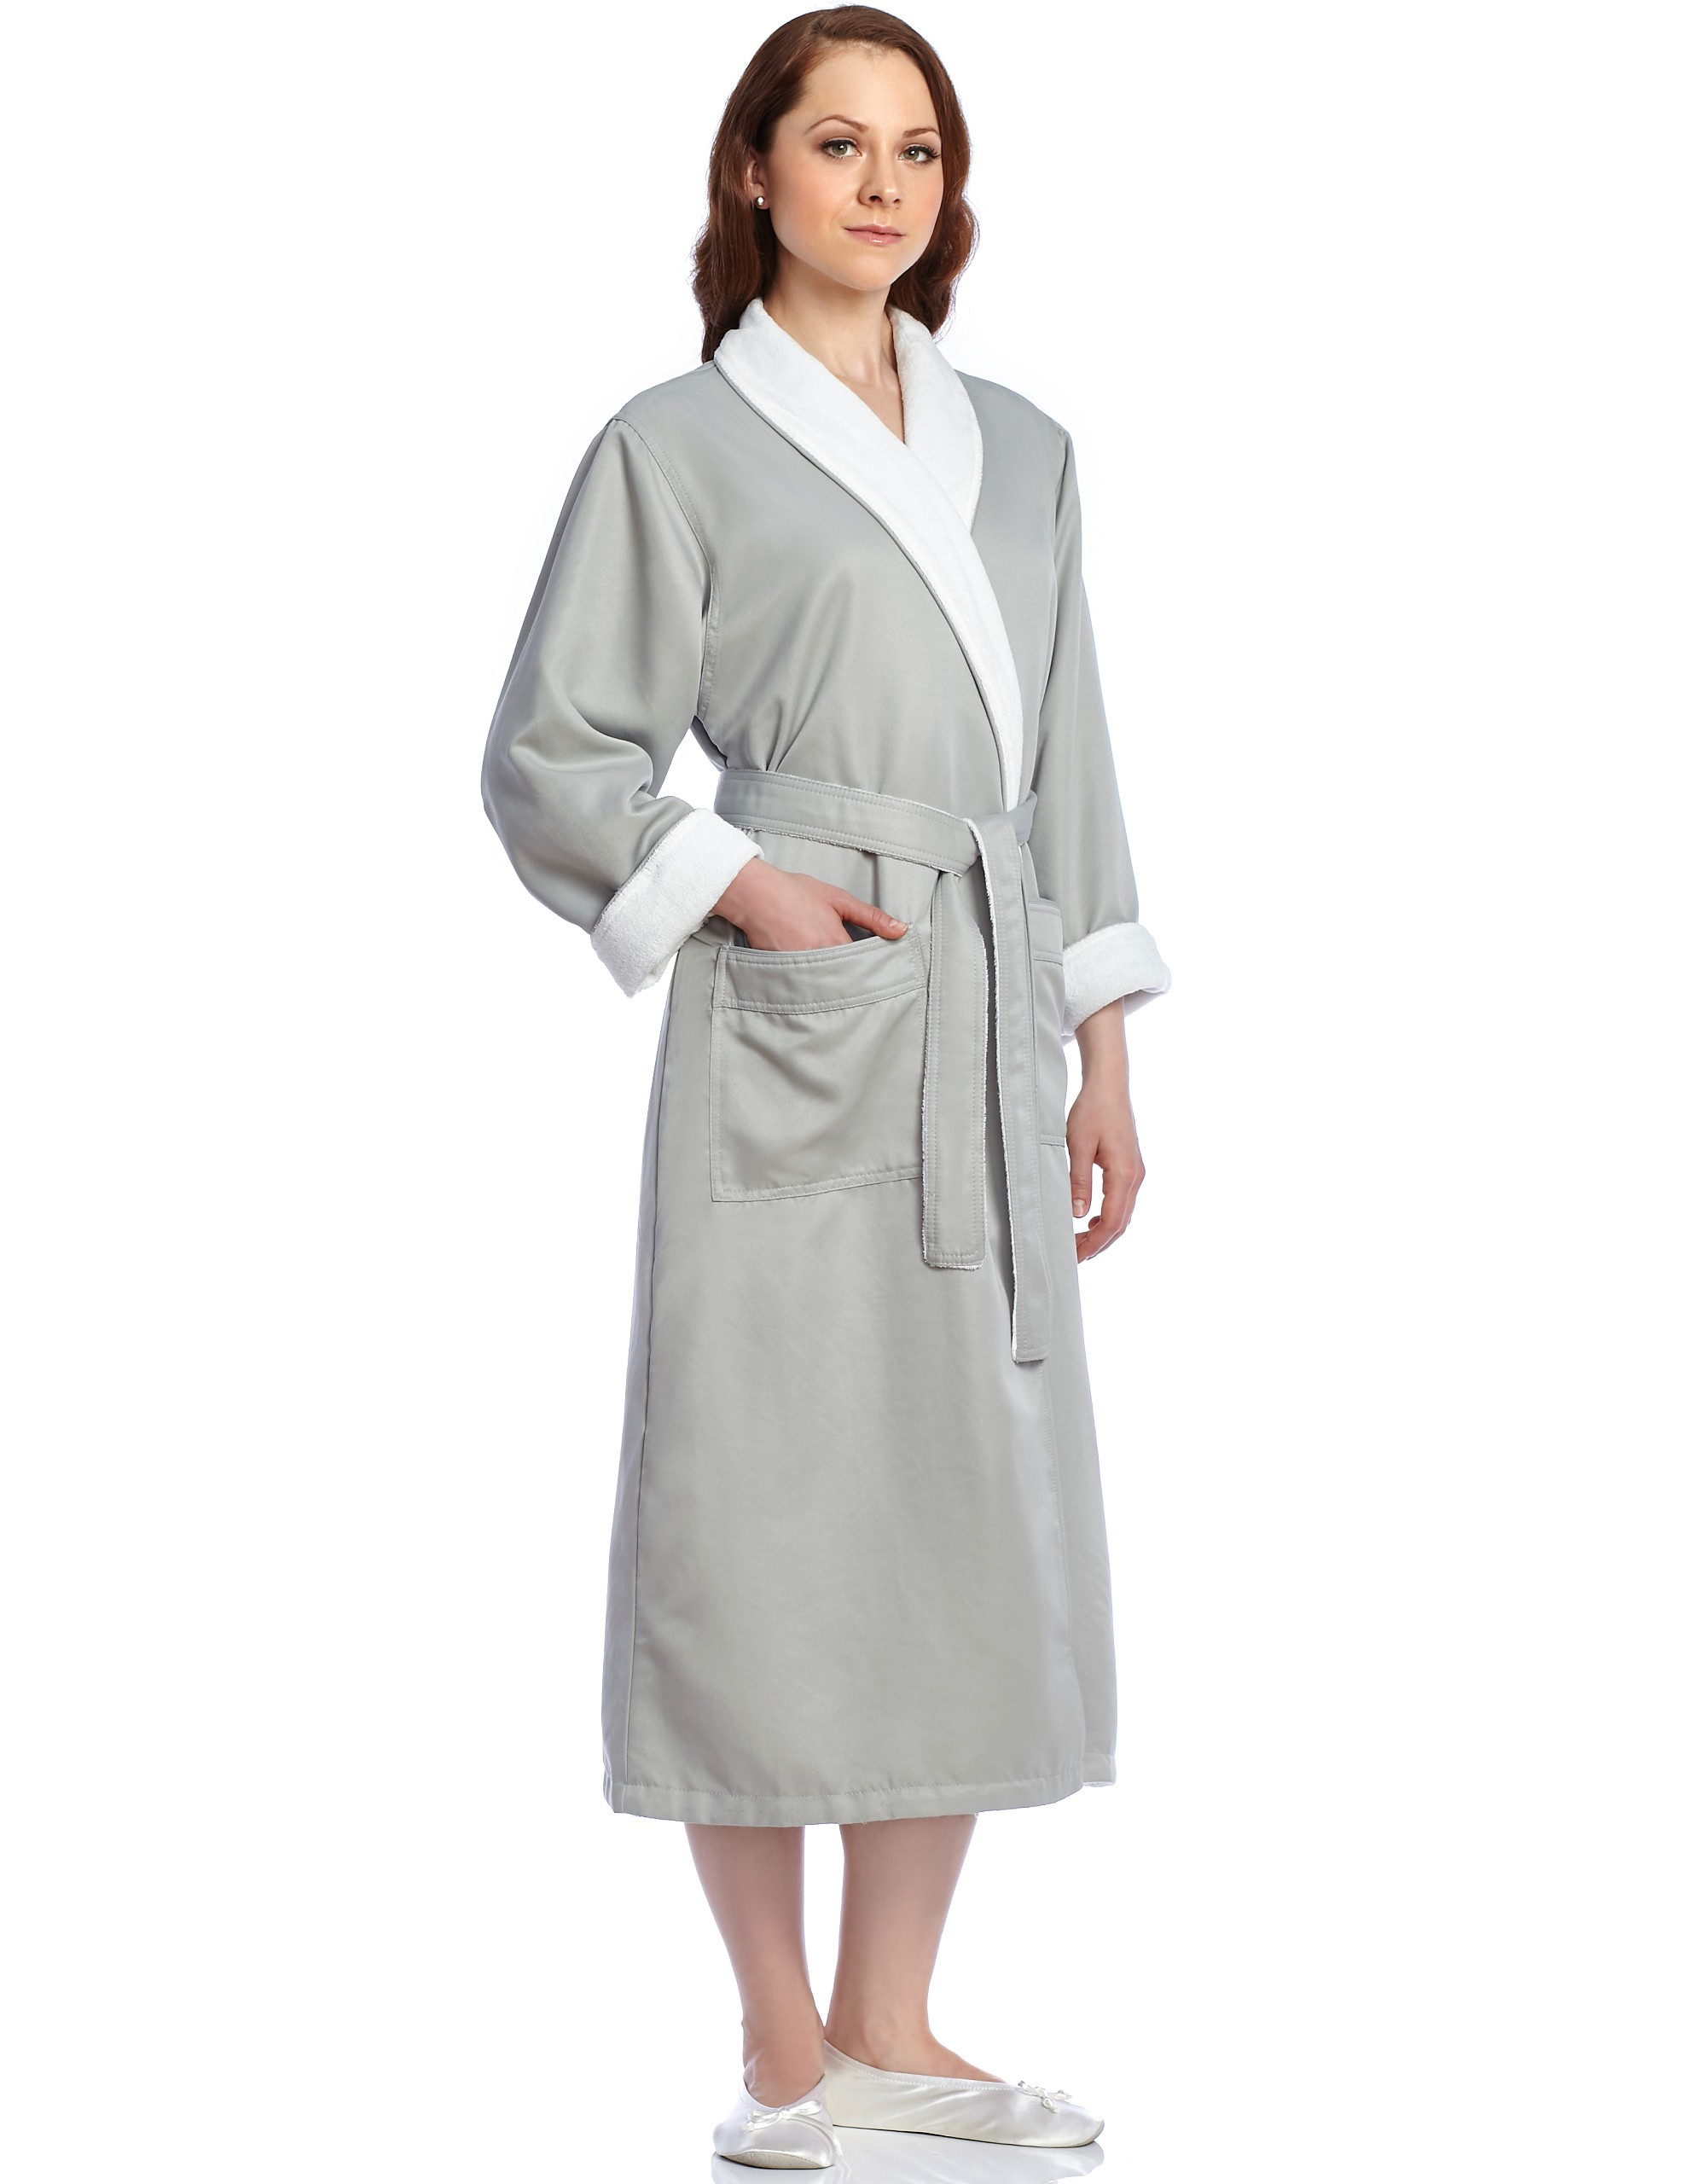 classcic 100% genuine hot-selling official Terry Lined Twill Spa Wrap Robe